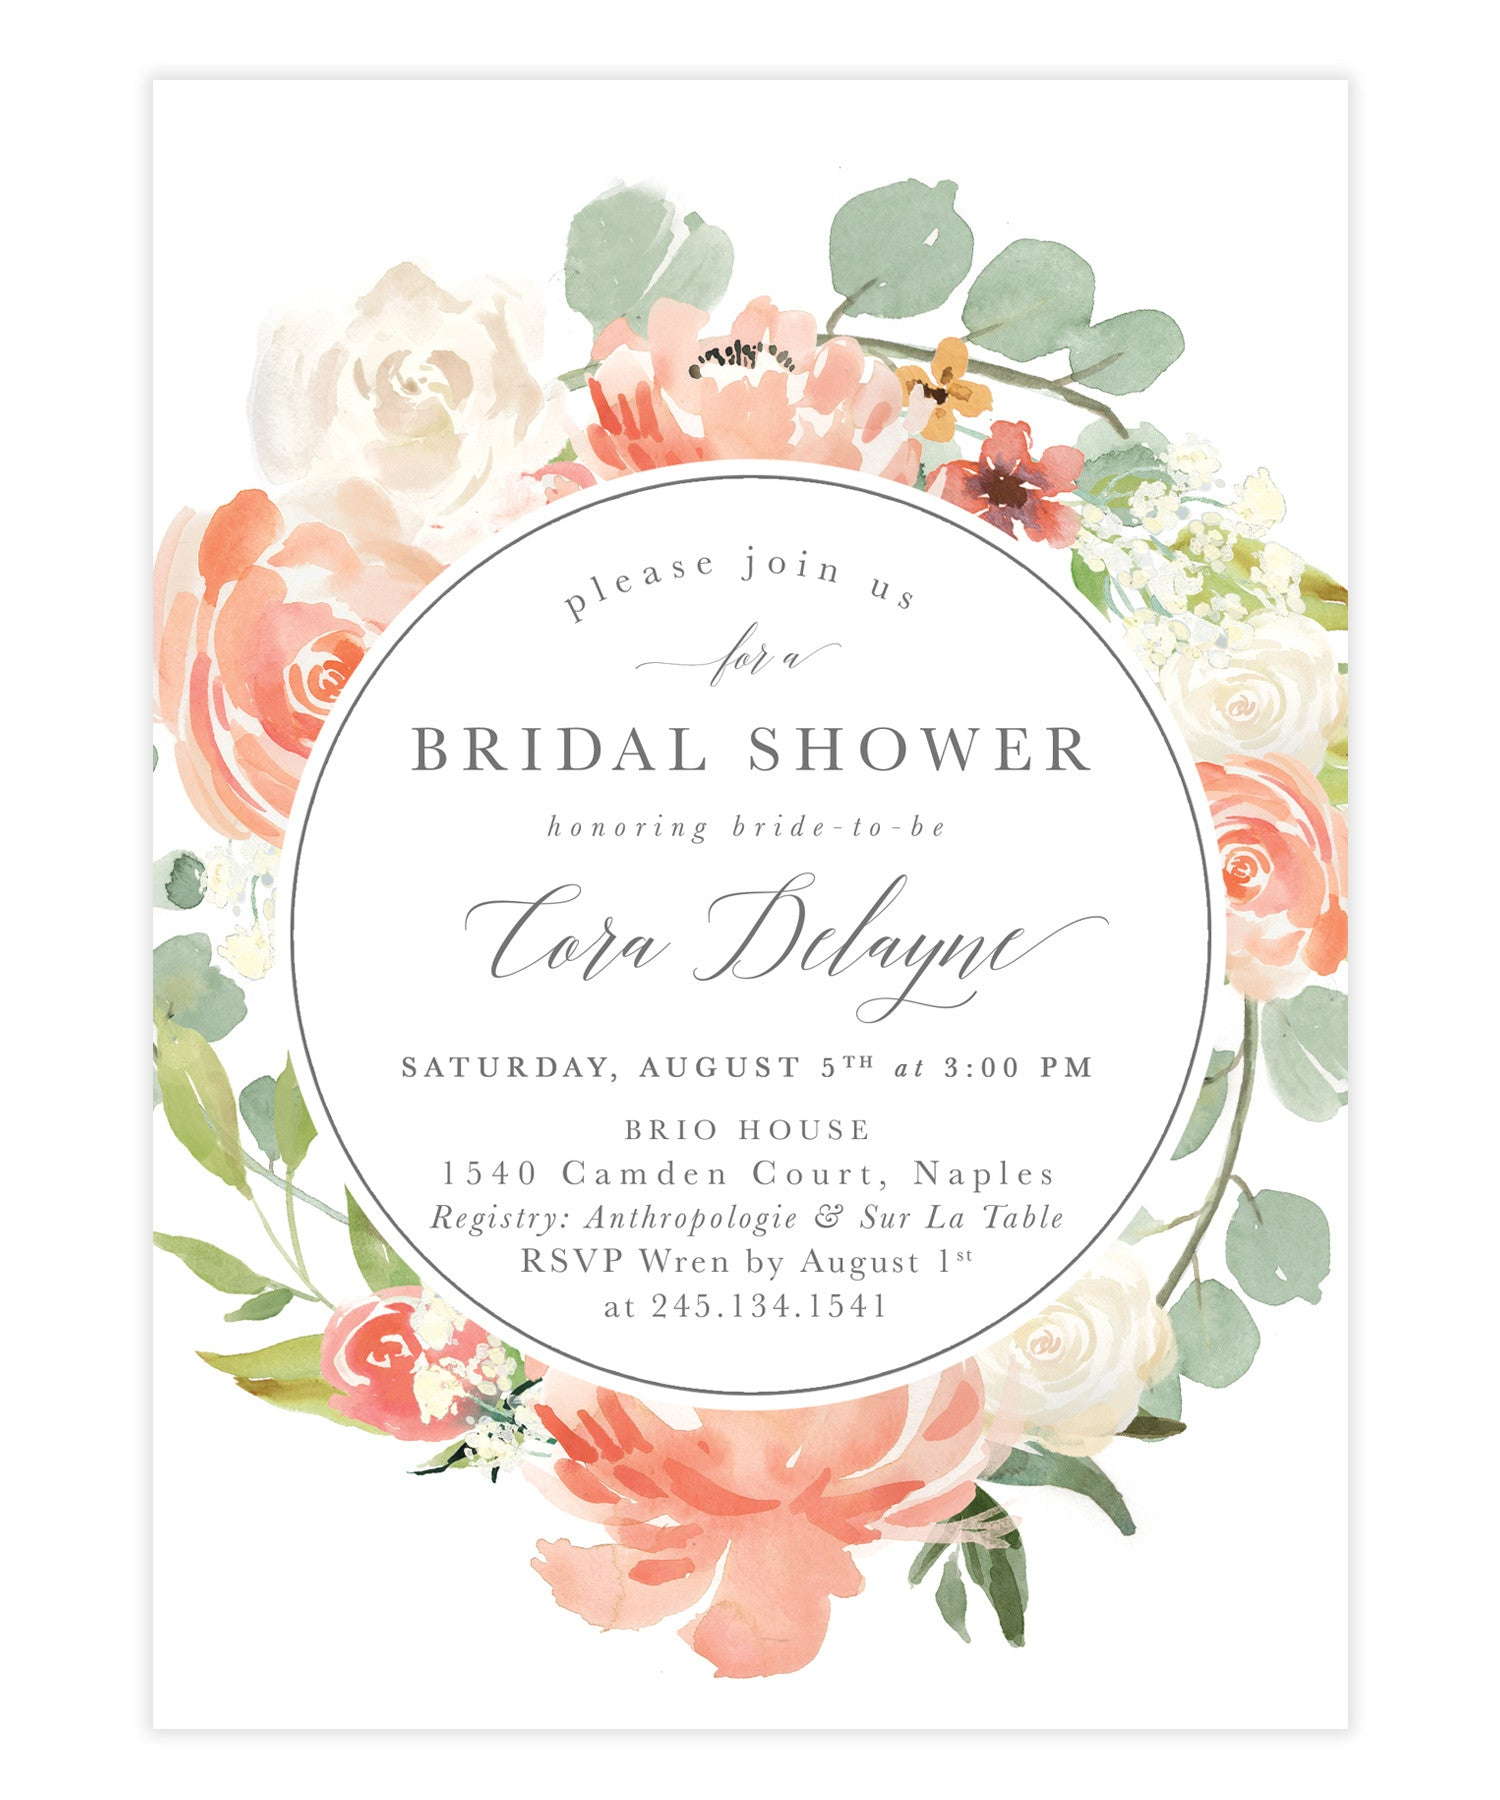 announcement wedding registry size cards large shower template gift medium inspiring card baby bridal